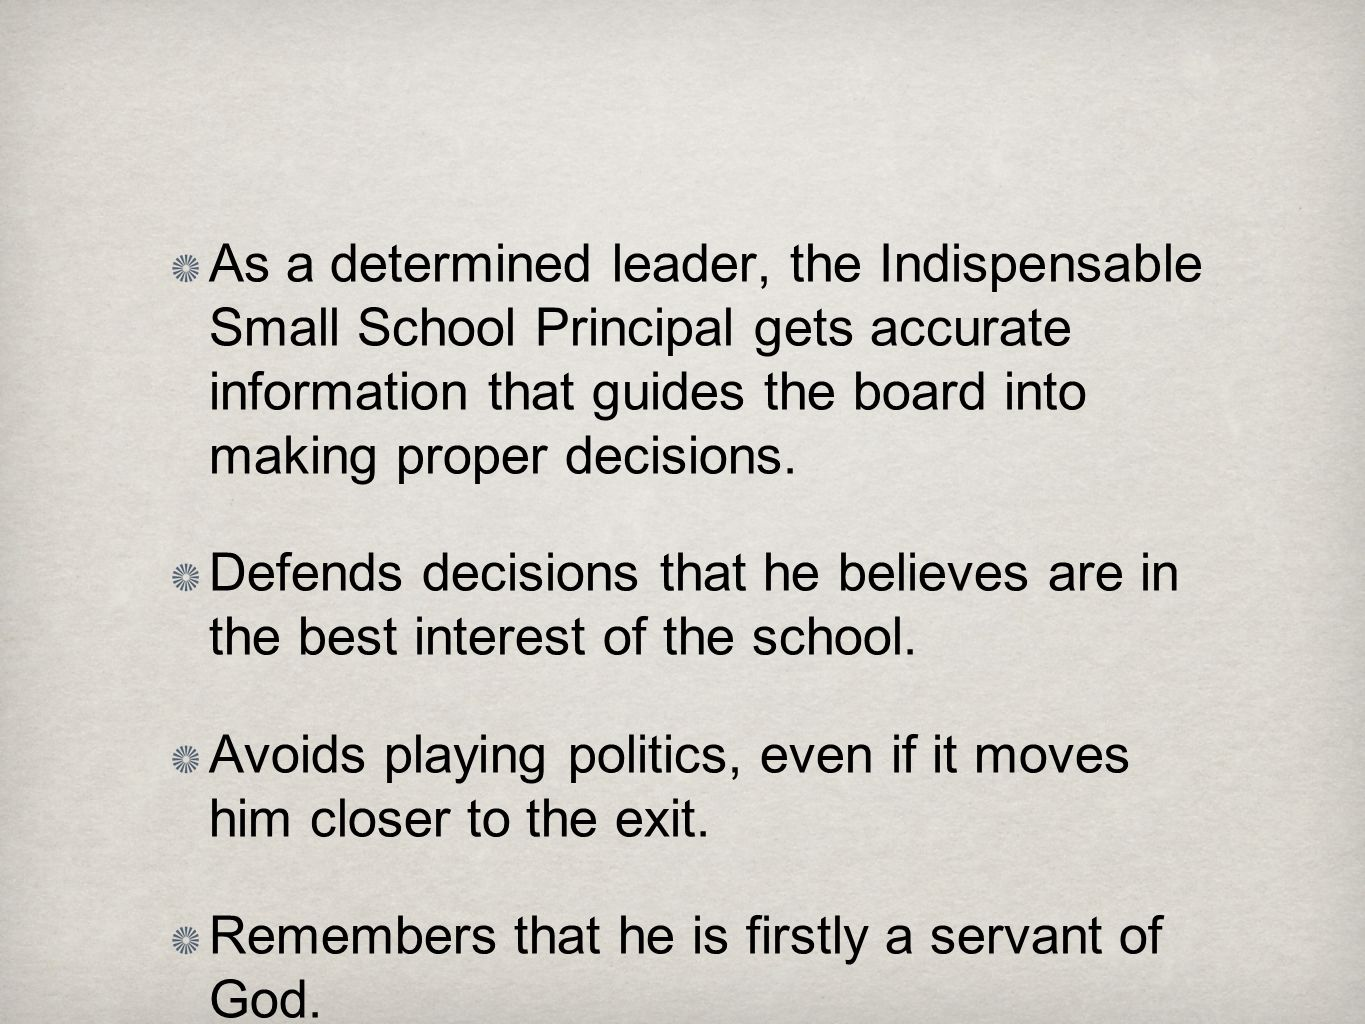 As a determined leader, the Indispensable Small School Principal gets accurate information that guides the board into making proper decisions.